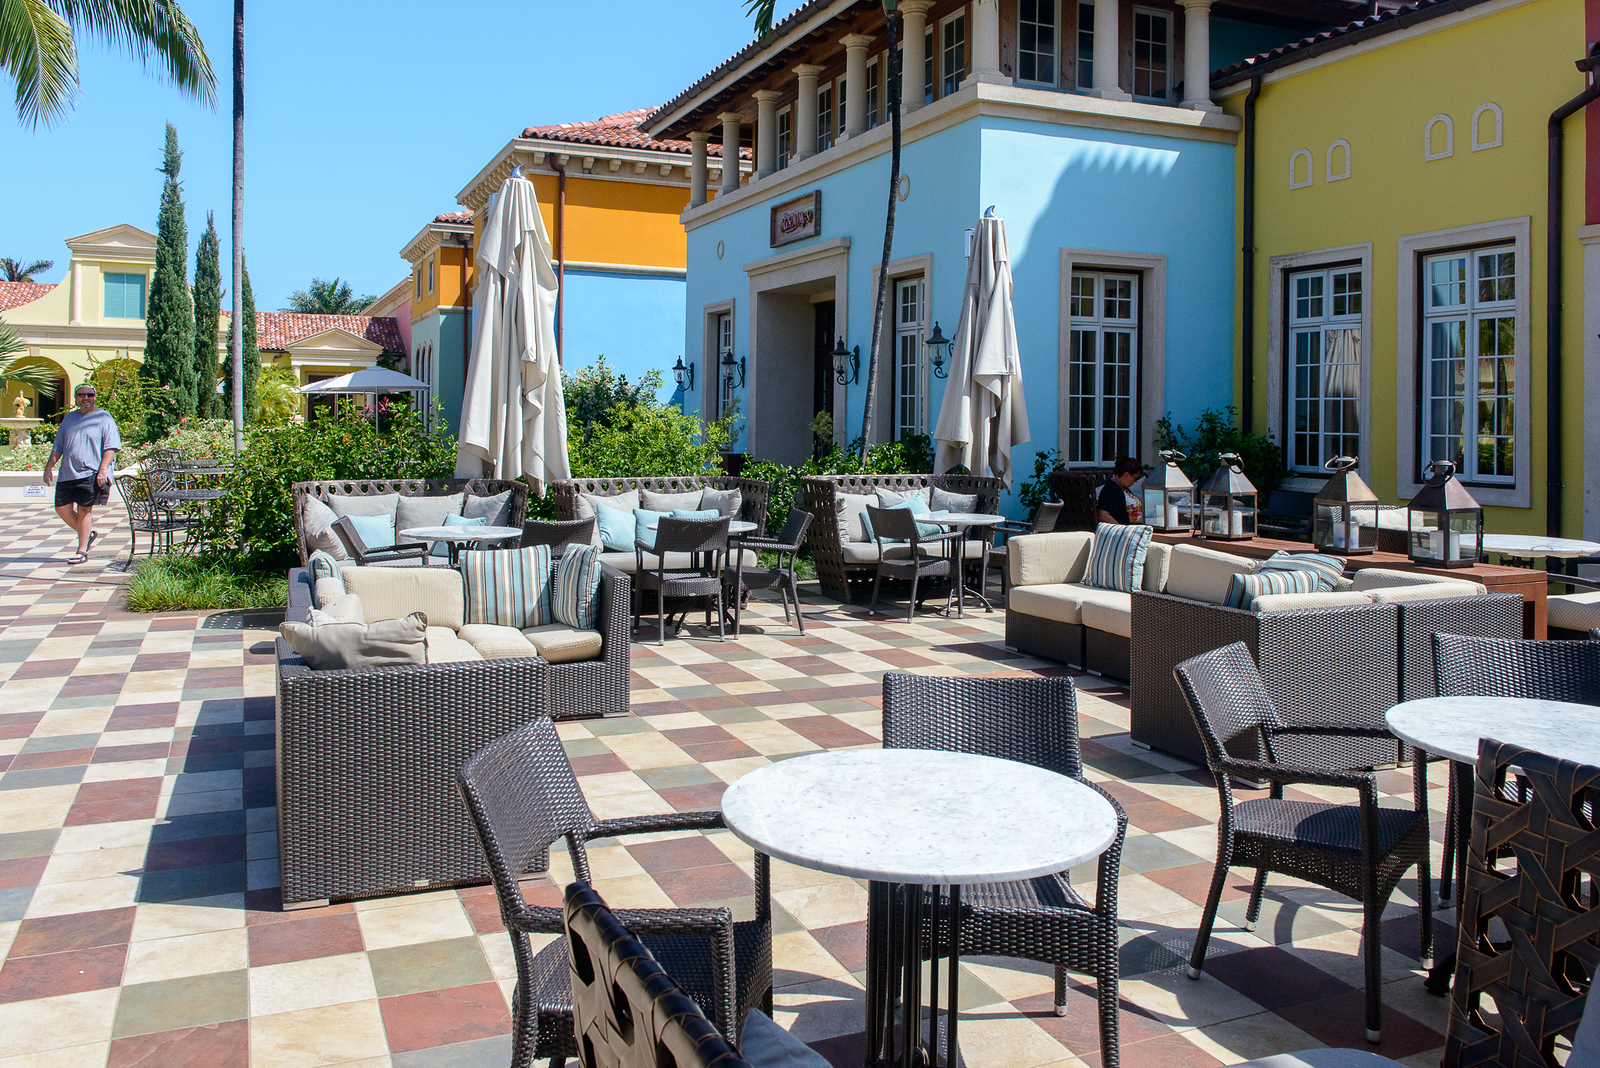 Outdoor seating in front of Cafe de Paris